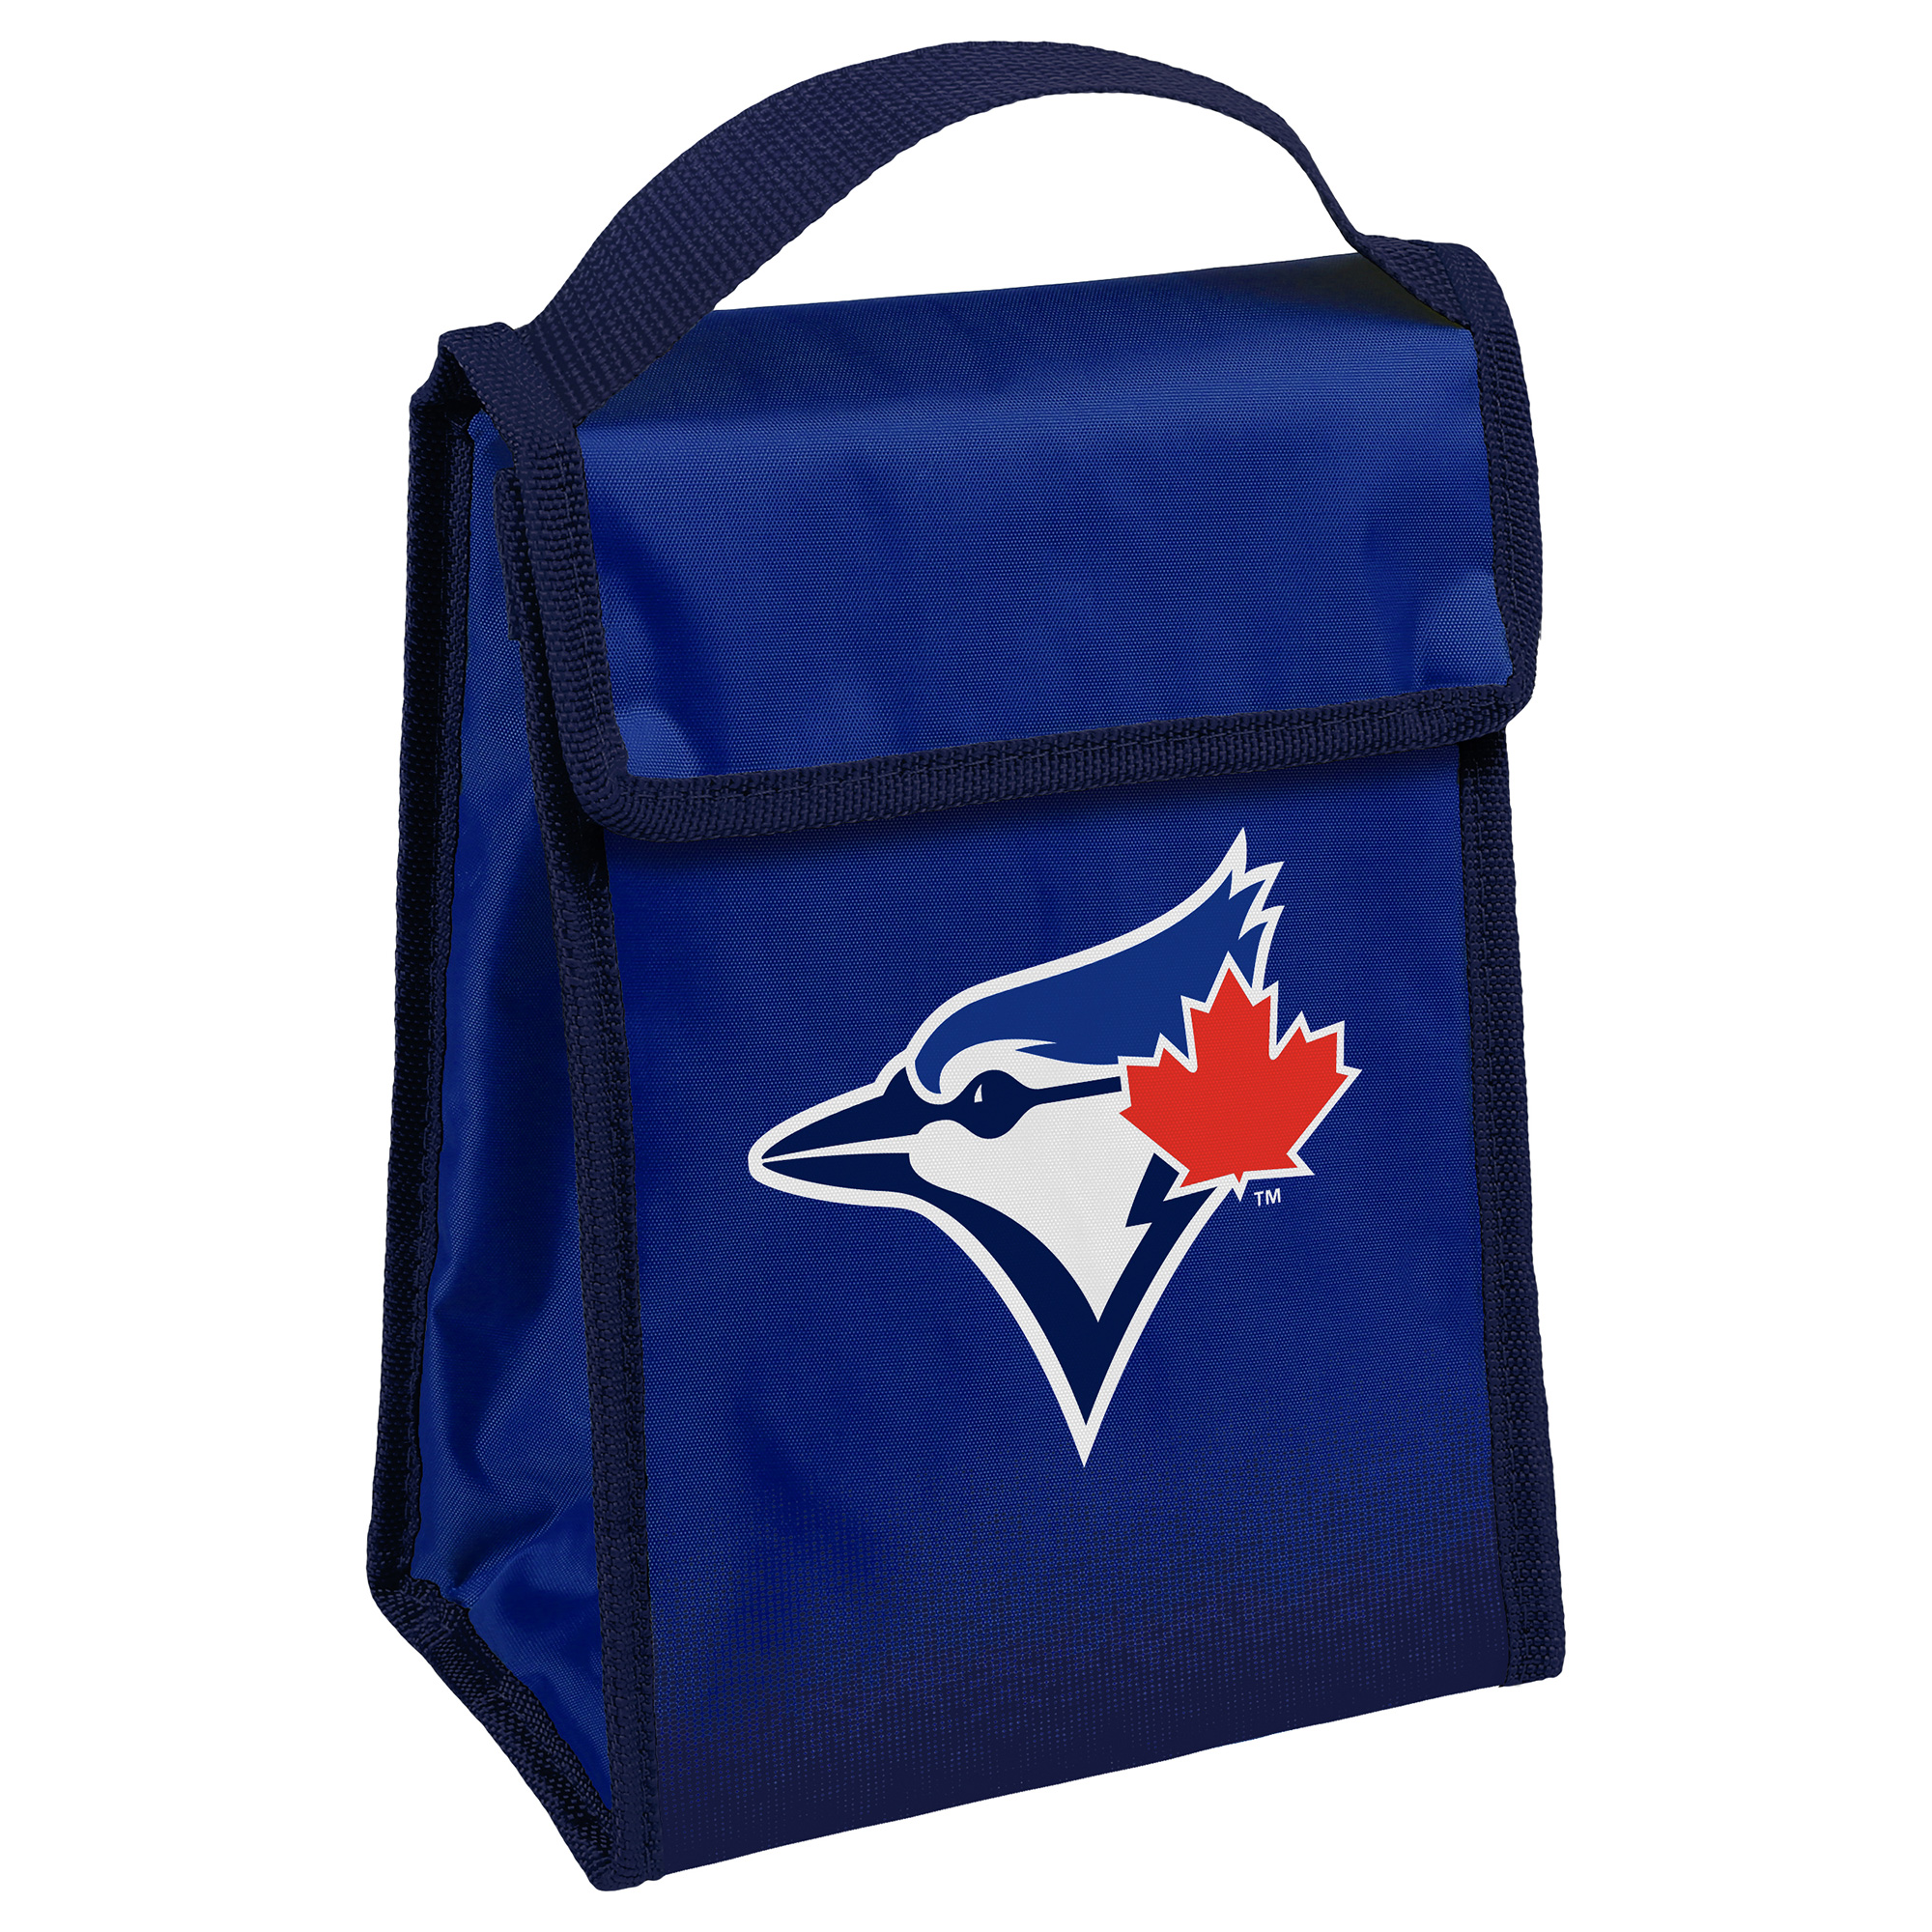 Toronto Blue Jays Gradient Lunch Bag - No Size